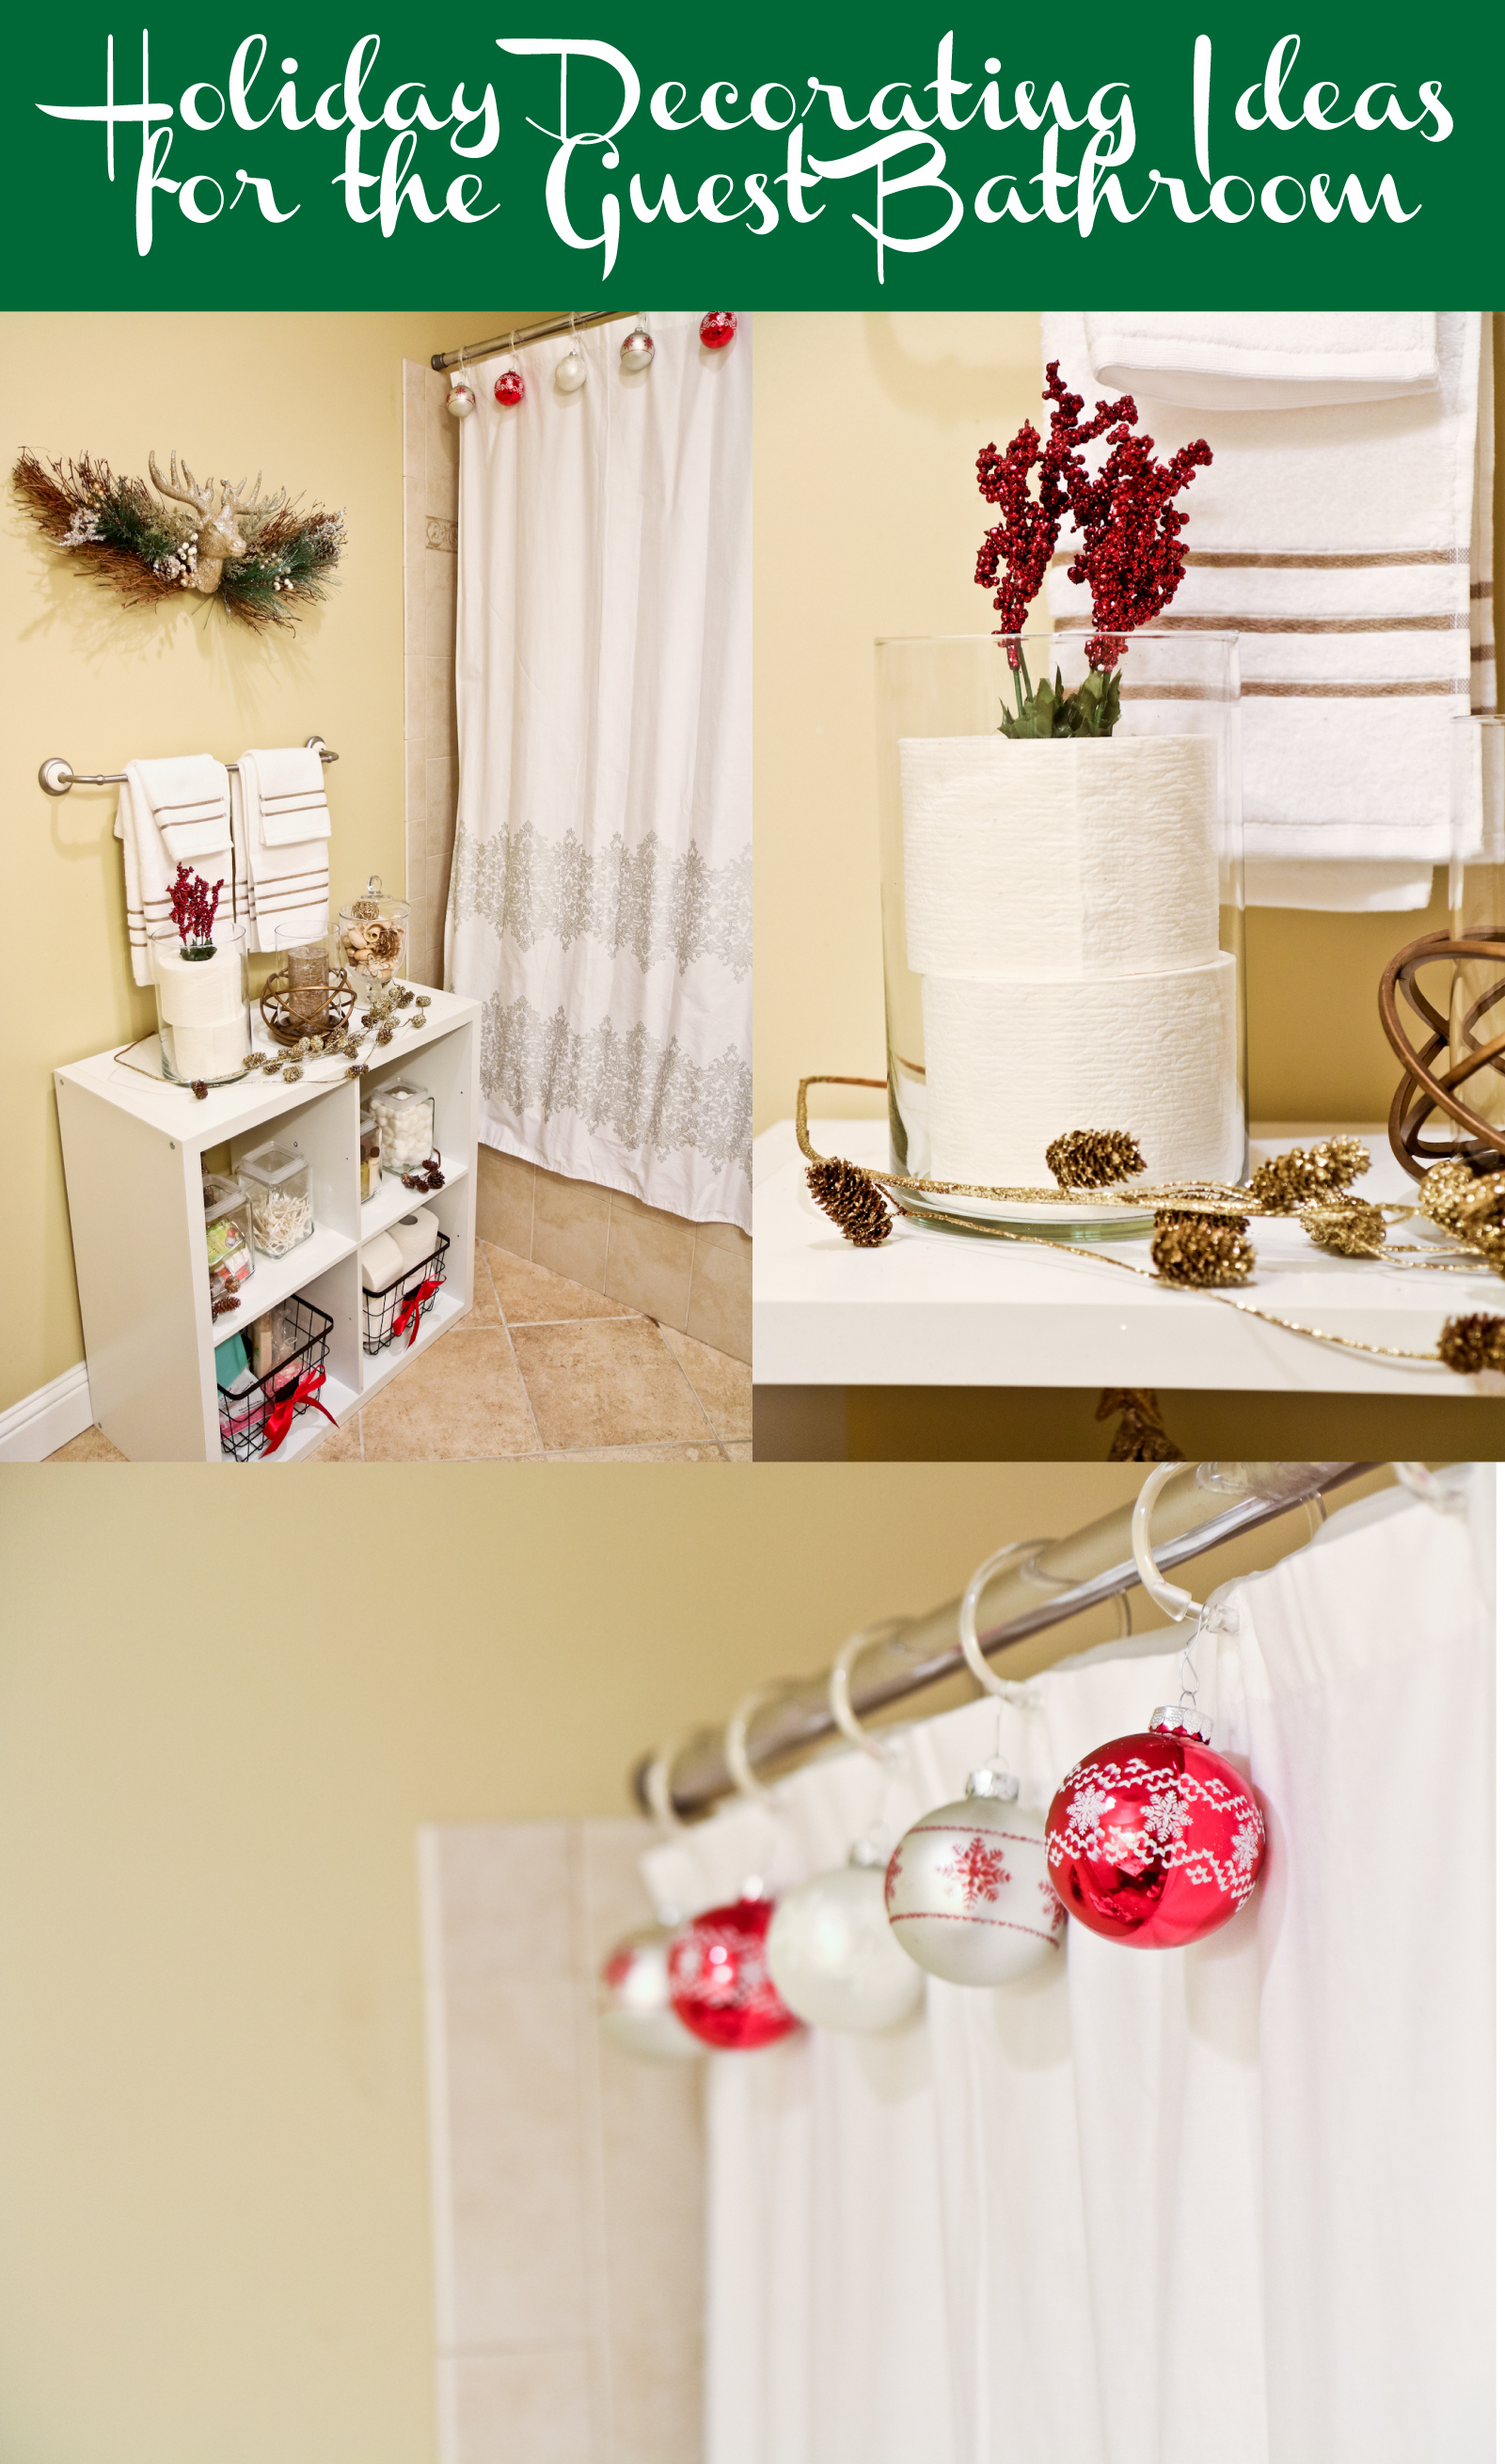 5 tips to prepare your home for holiday guests sandyalamode - How to decorate a guest bathroom ...